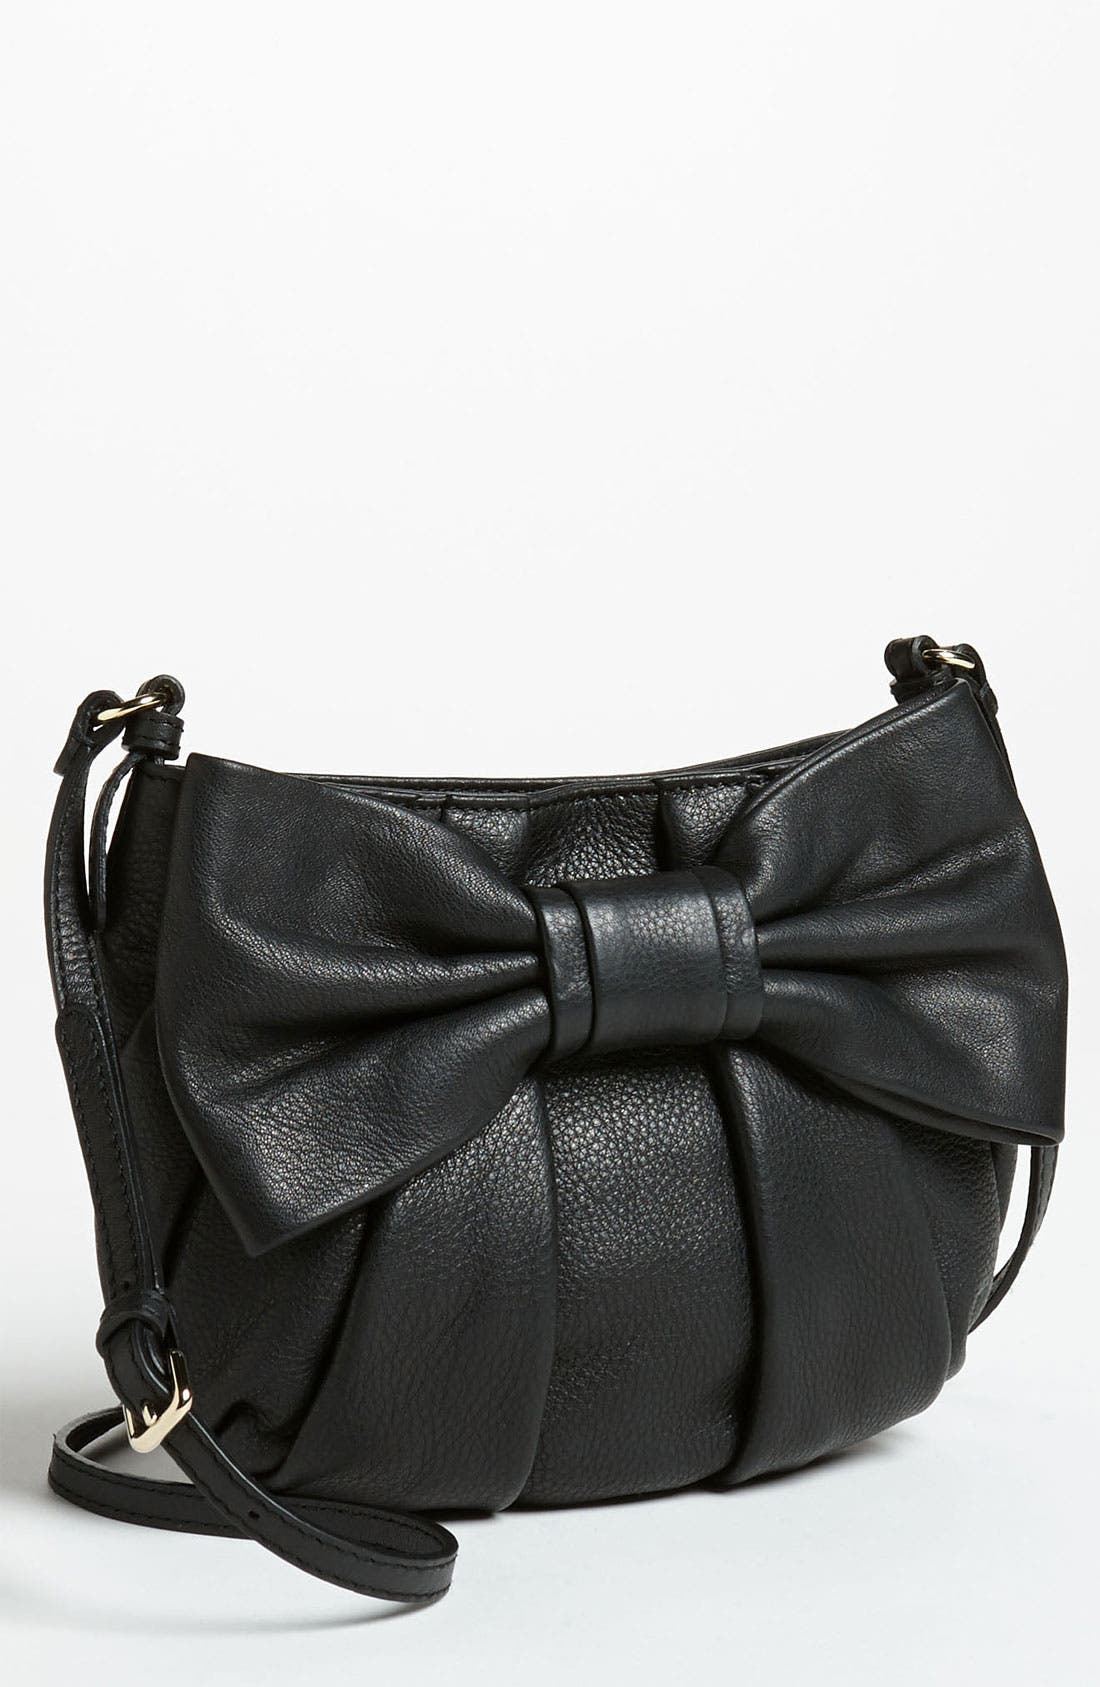 Alternate Image 1 Selected - RED Valentino 'Bow - Small' Leather Crossbody Bag